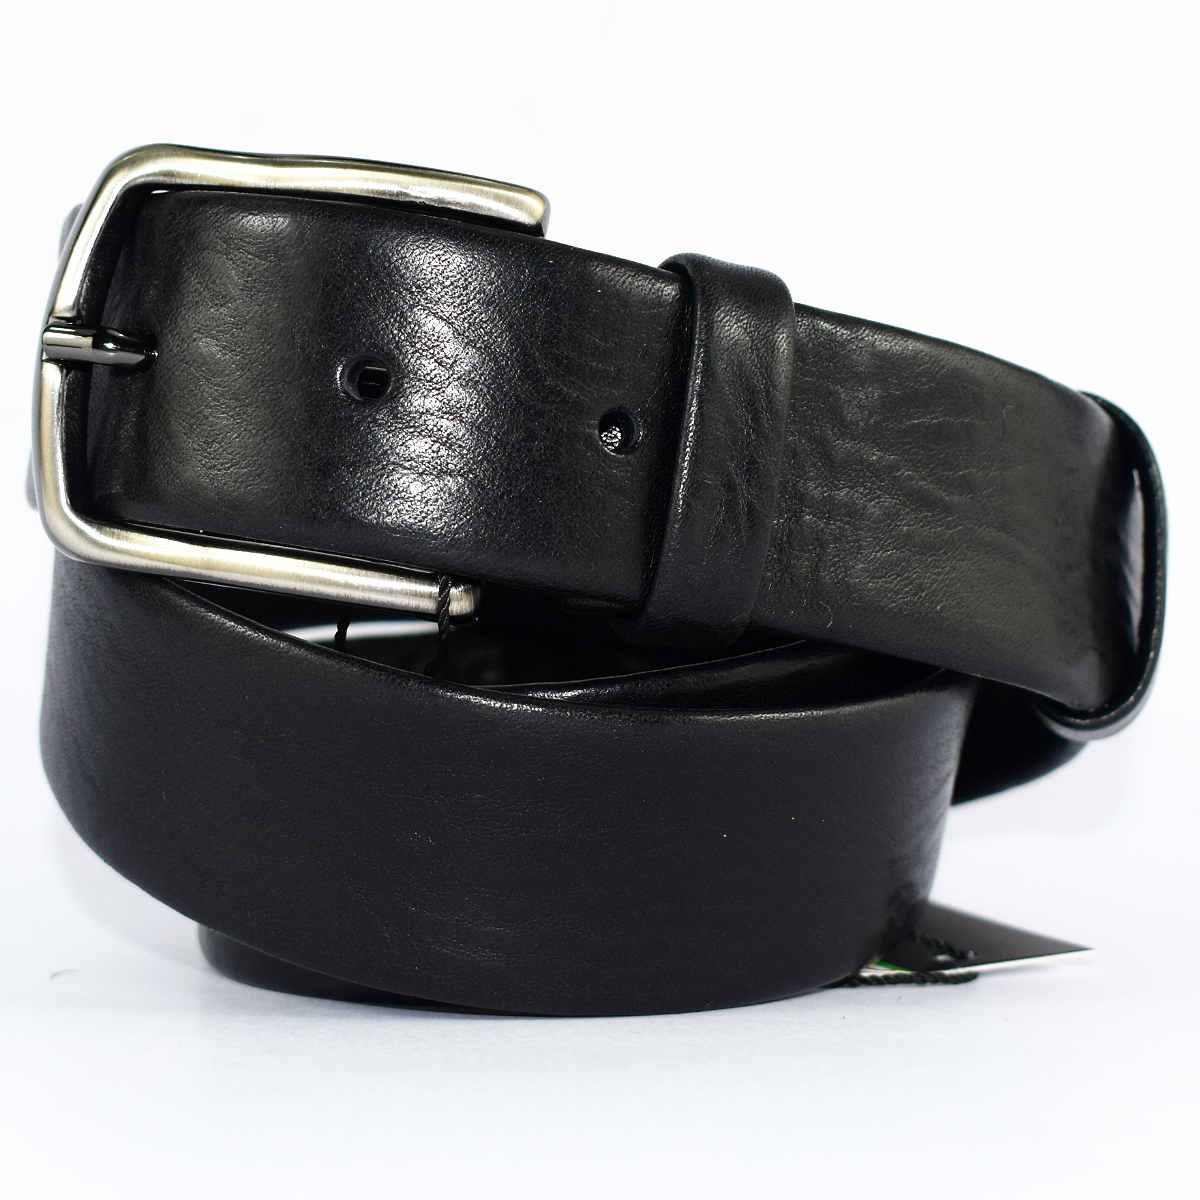 643635 belt without seams by Bottega Fiorentina